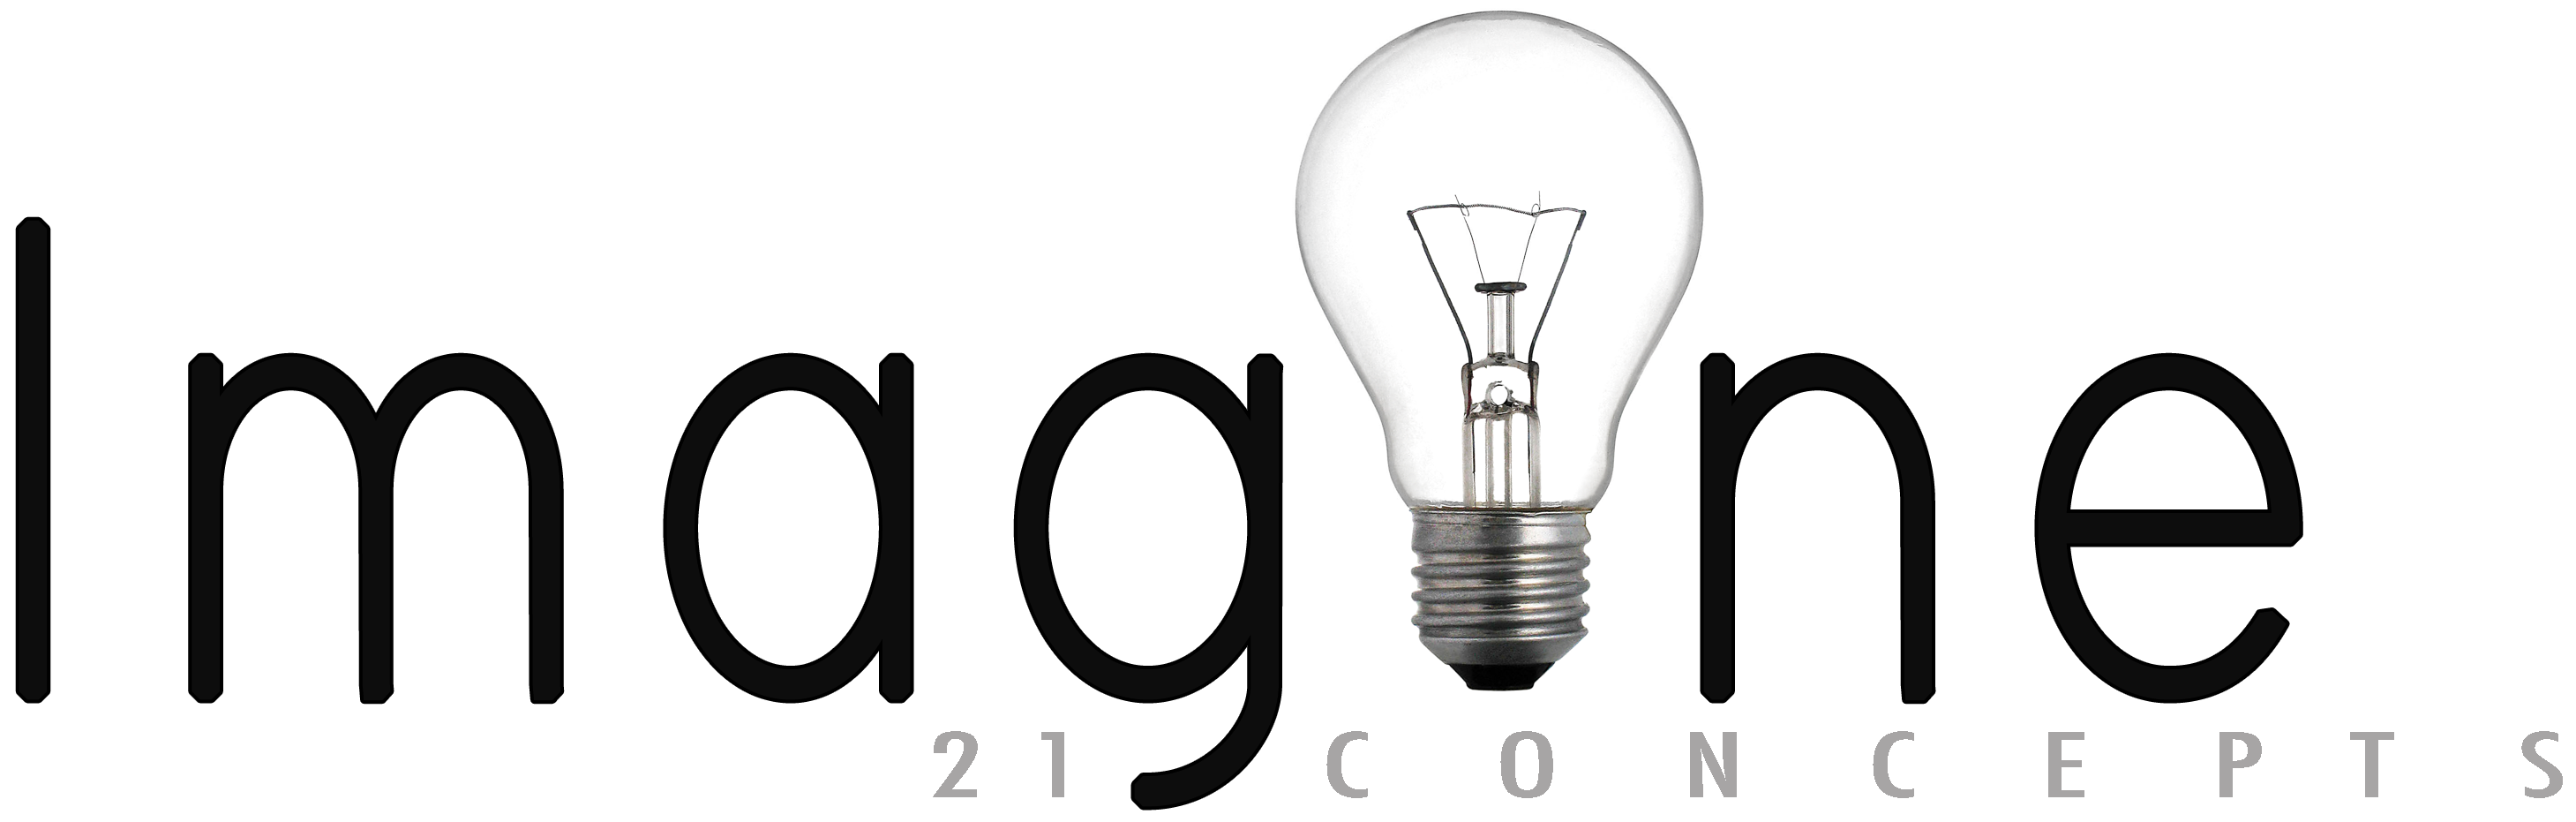 Imagine 21 Concepts Sticky Logo Retina